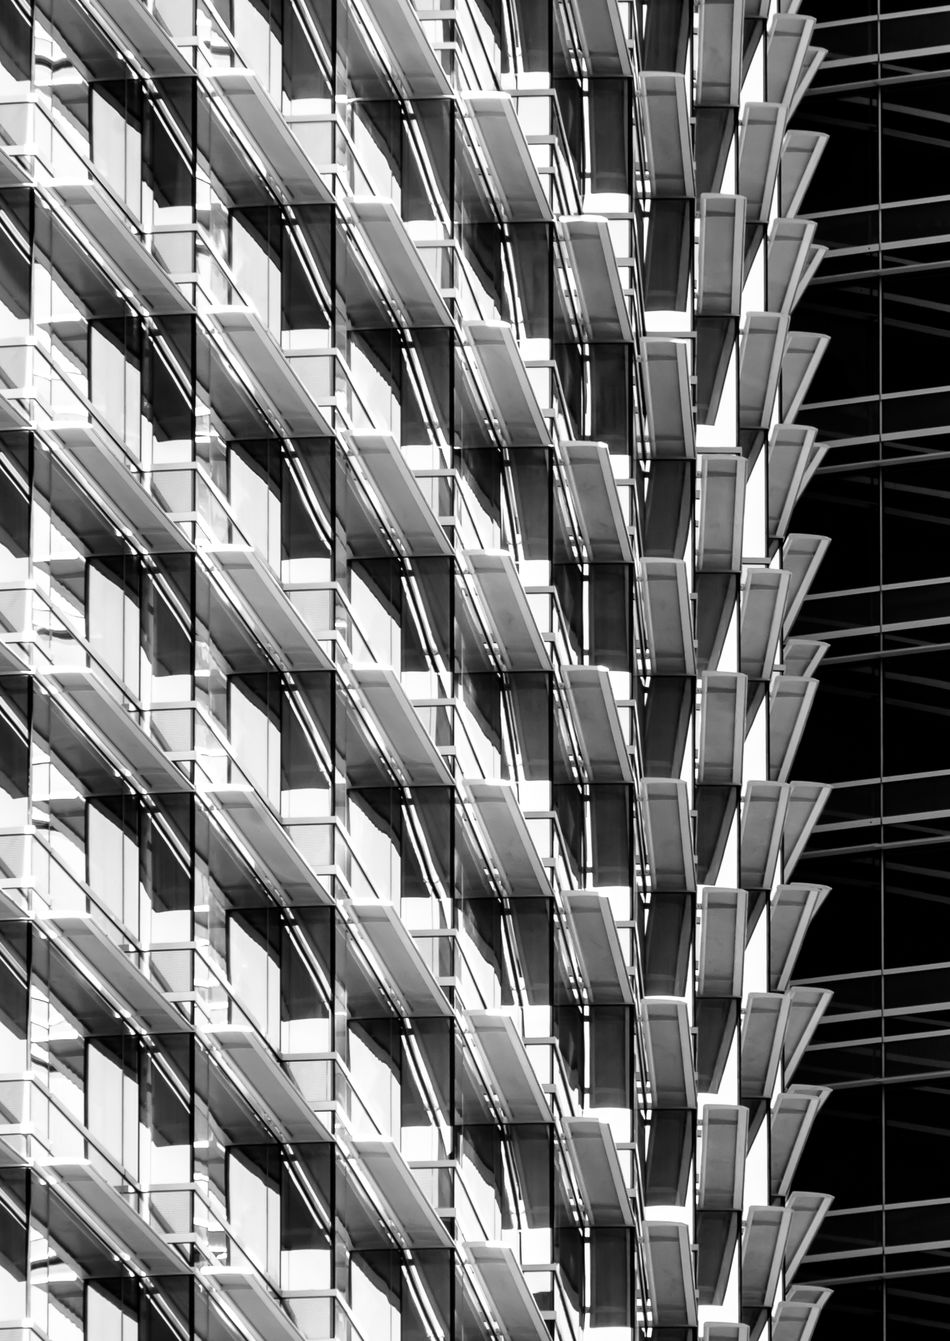 Abstract Architecture Backgrounds Blackandwhite Building Exterior Built Structure City Contrast Day Full Frame Low Angle View No People Outdoors Pattern Repetition Skyscraper Window Welcome To Black